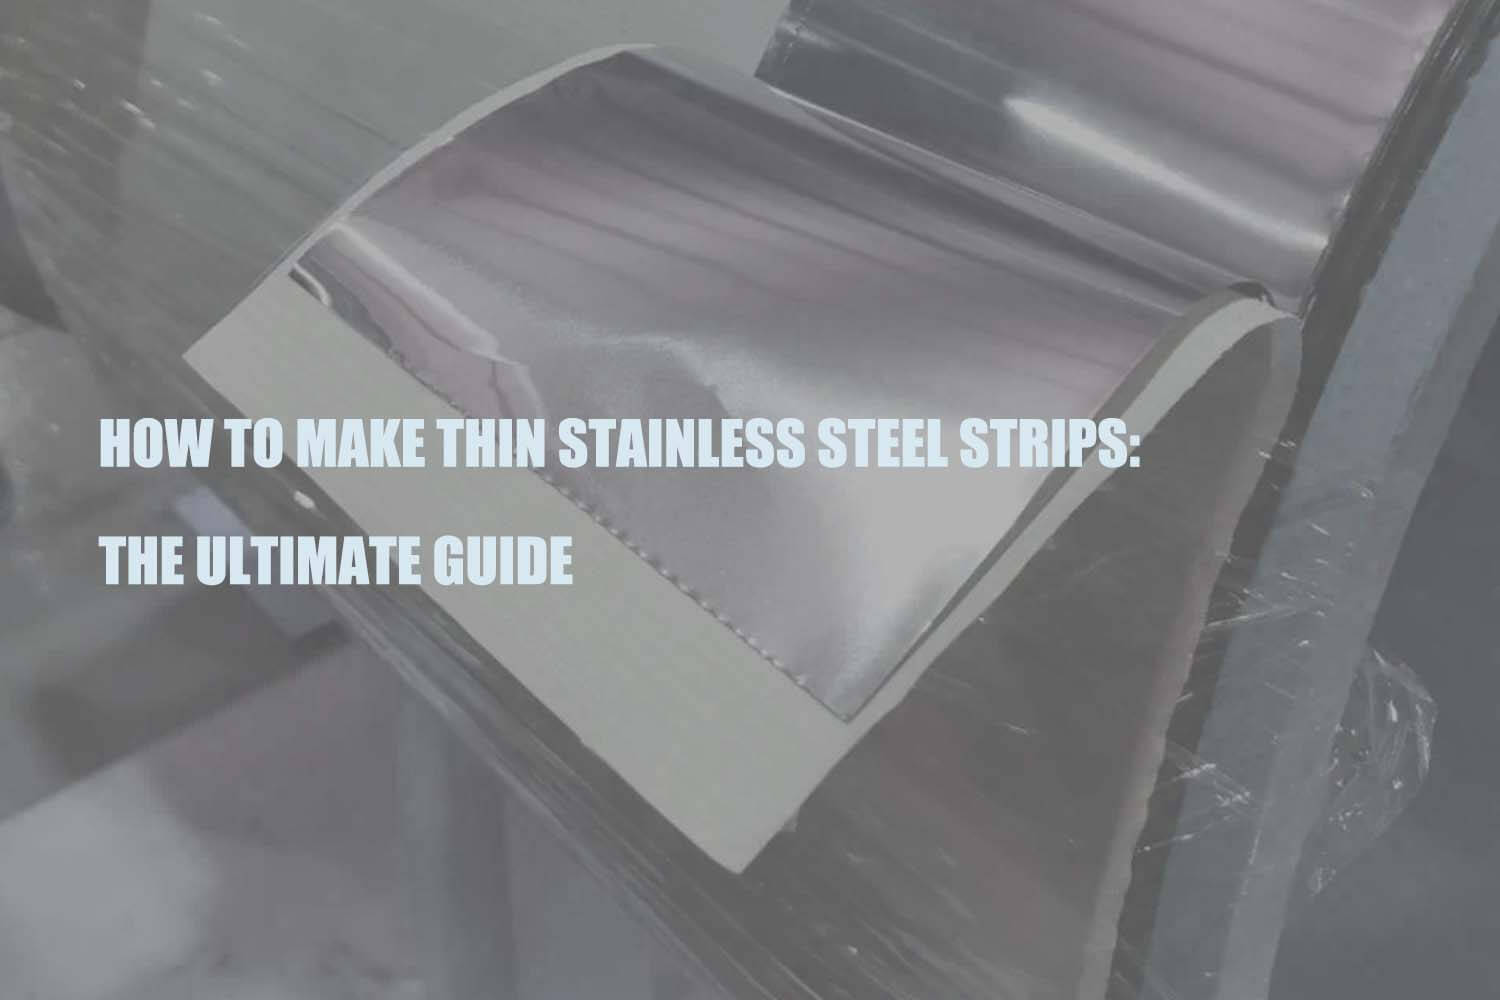 how-to-make-thin-stainless-steel-strips